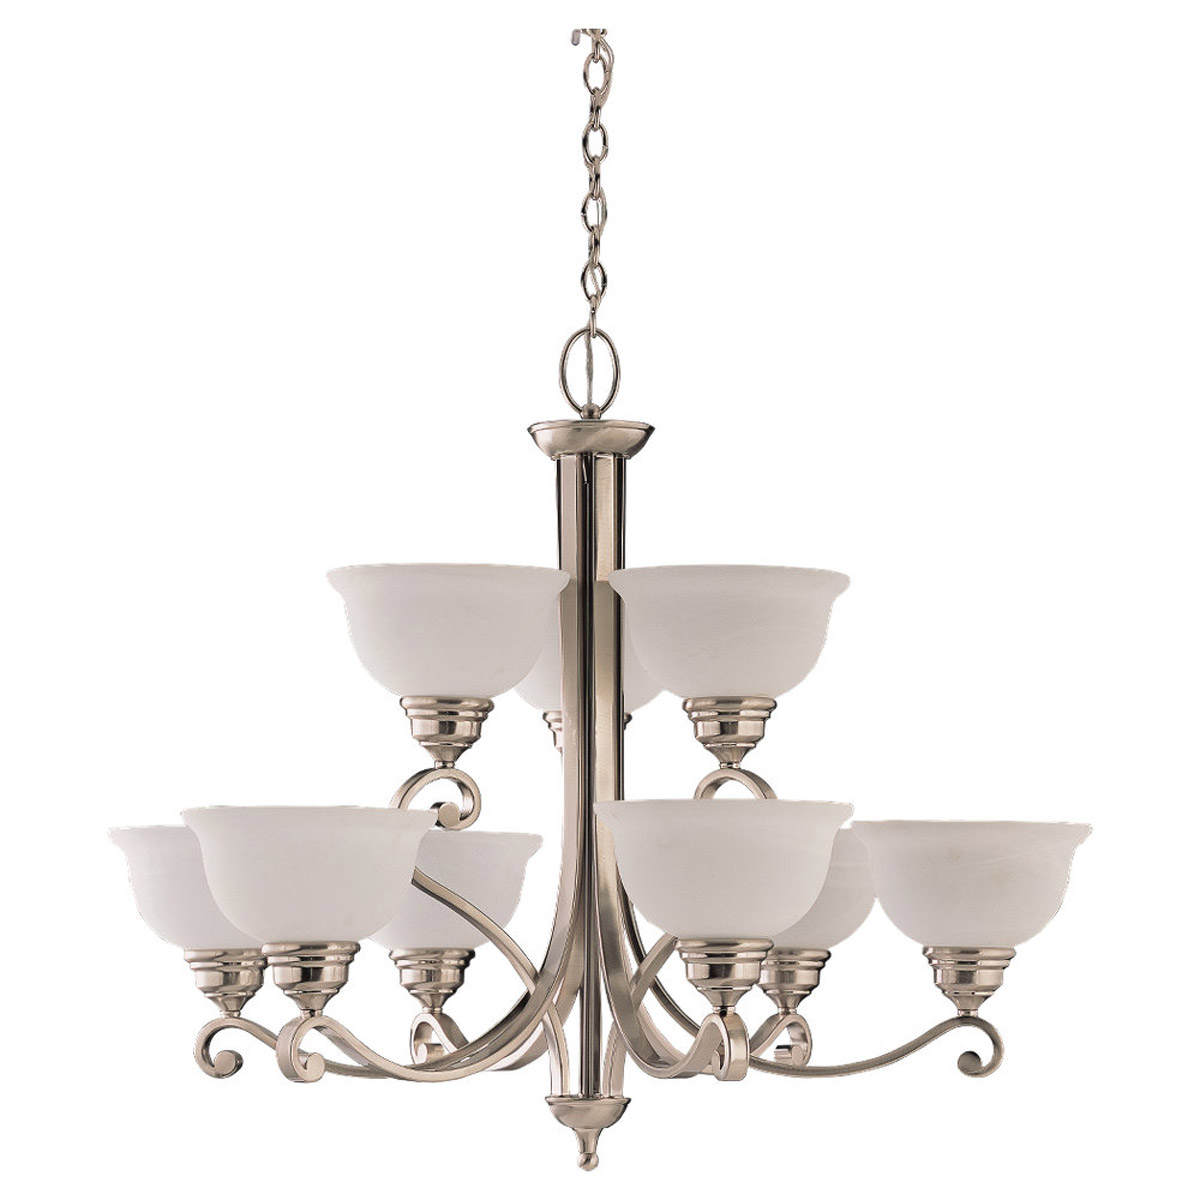 Sea Gull Lighting Serenity 9 Light Chandelier in Brushed Nickel 31192-962 photo